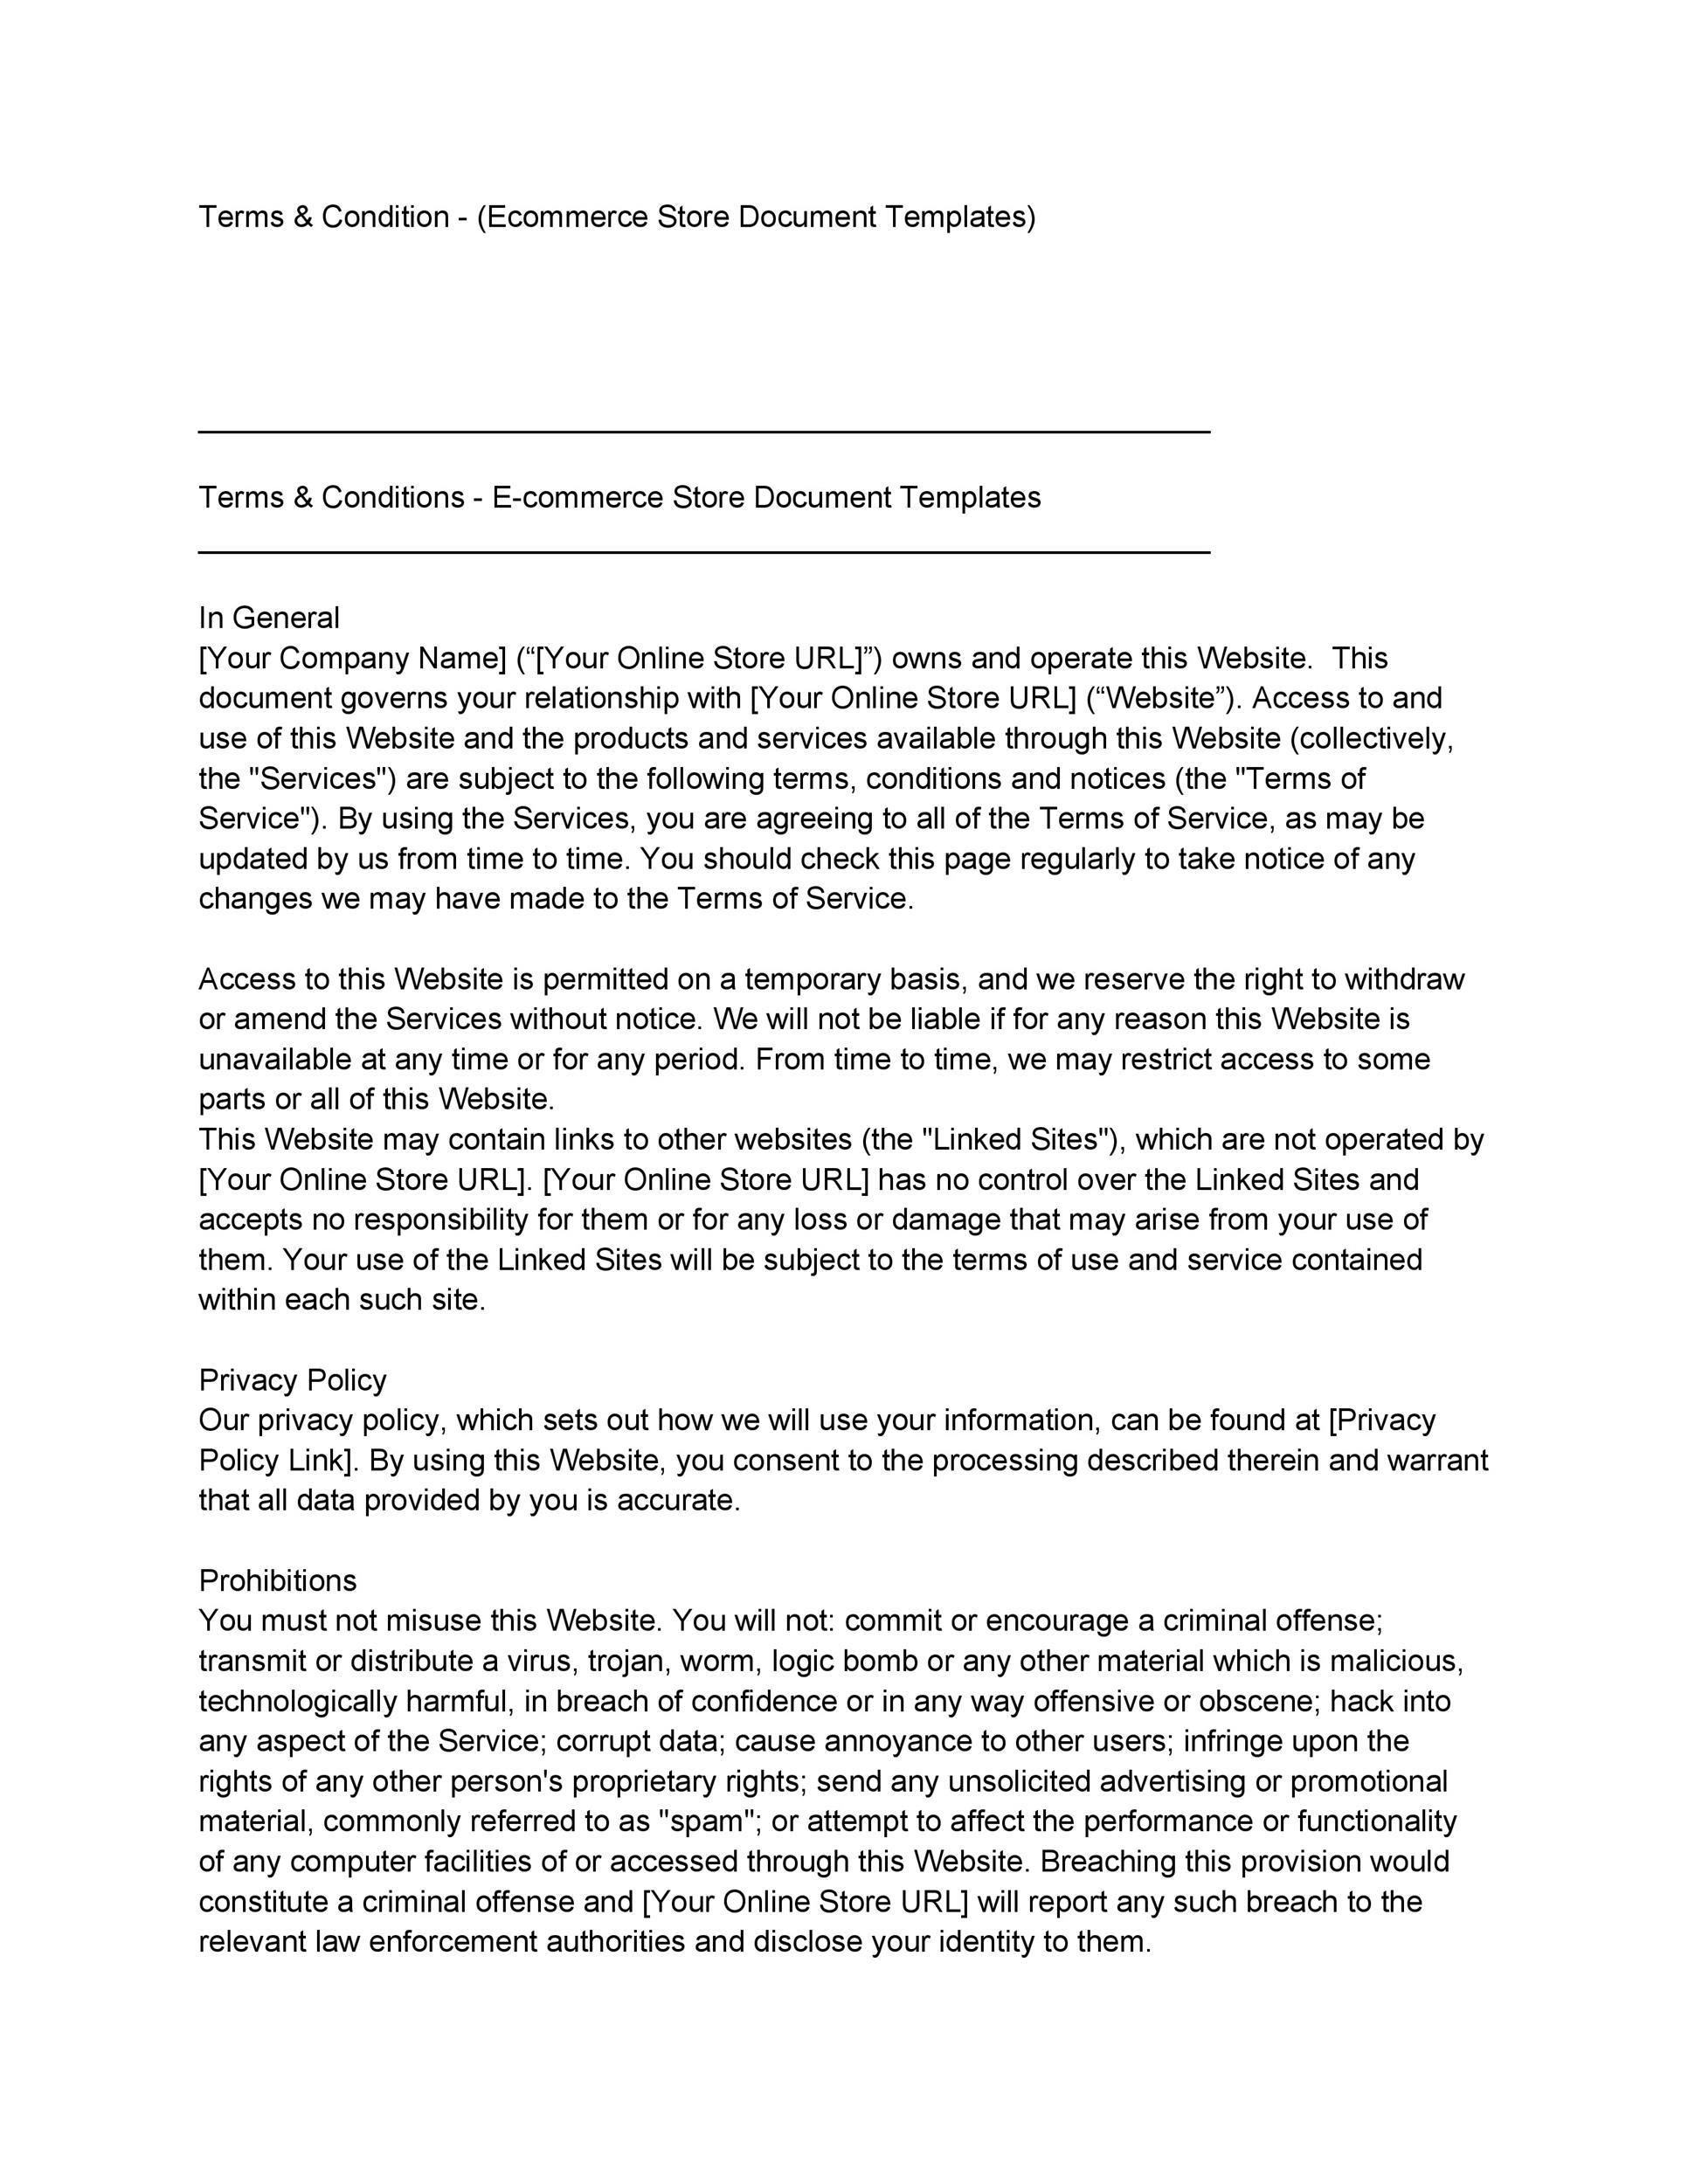 Free terms and conditions template 06